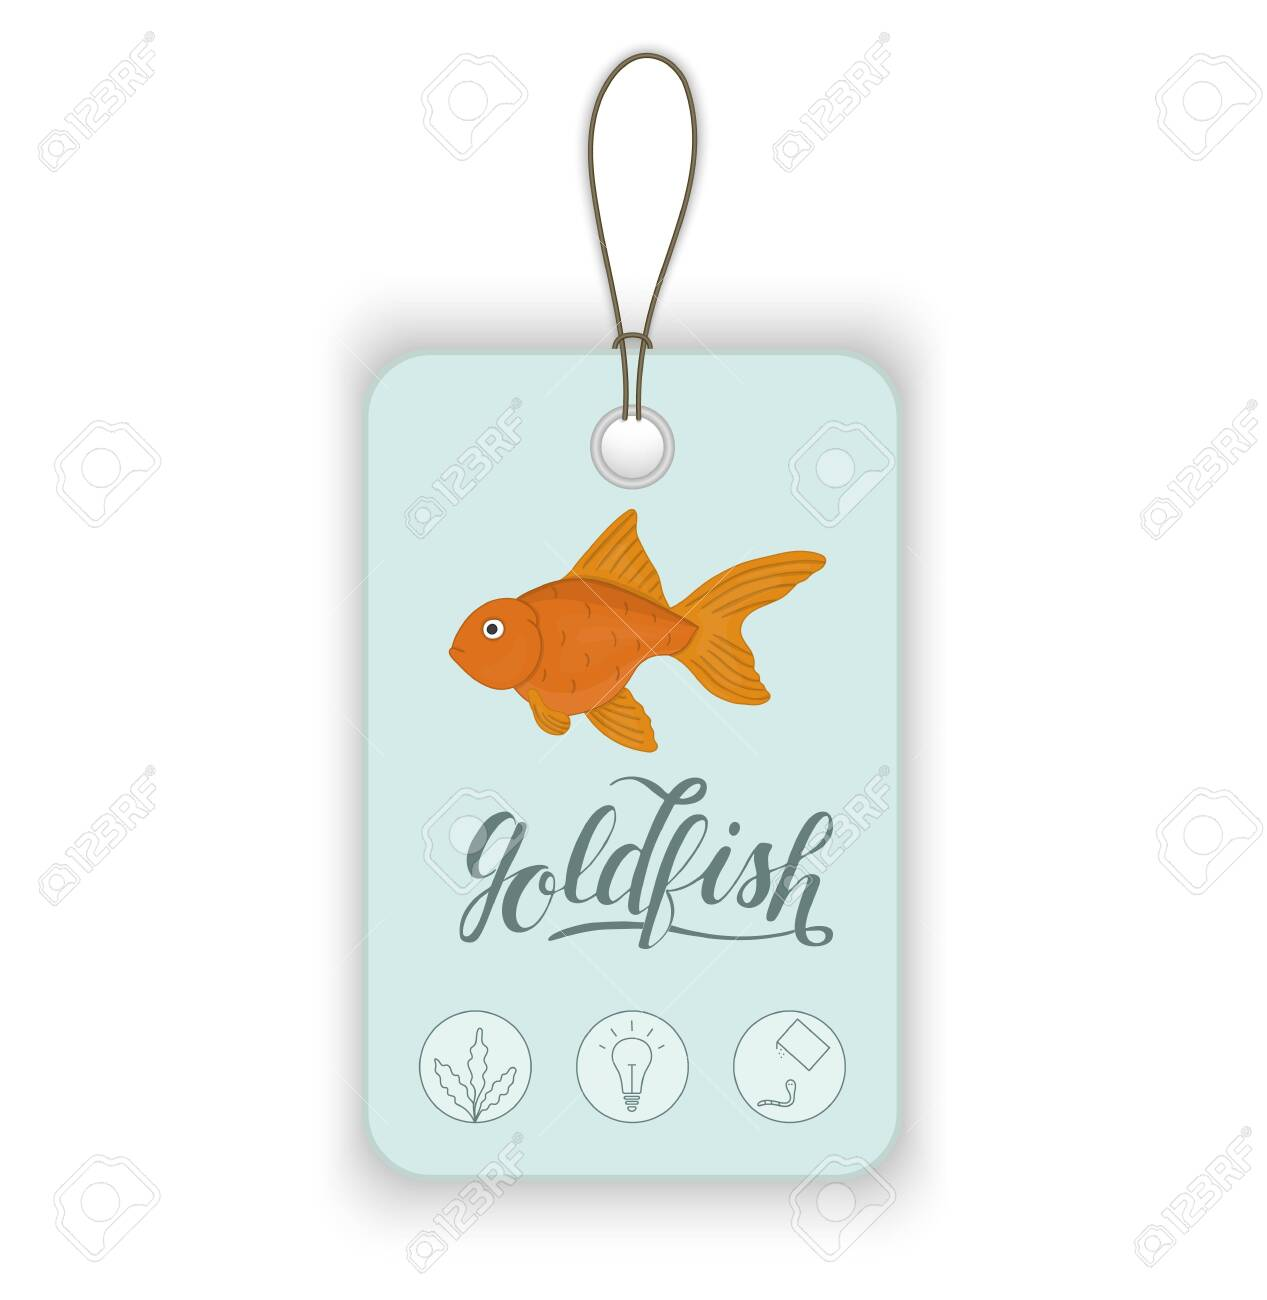 Vector Price Tag With Aquarium Fish And Lettering Illustration Royalty Free Cliparts Vectors And Stock Illustration Image 123747246